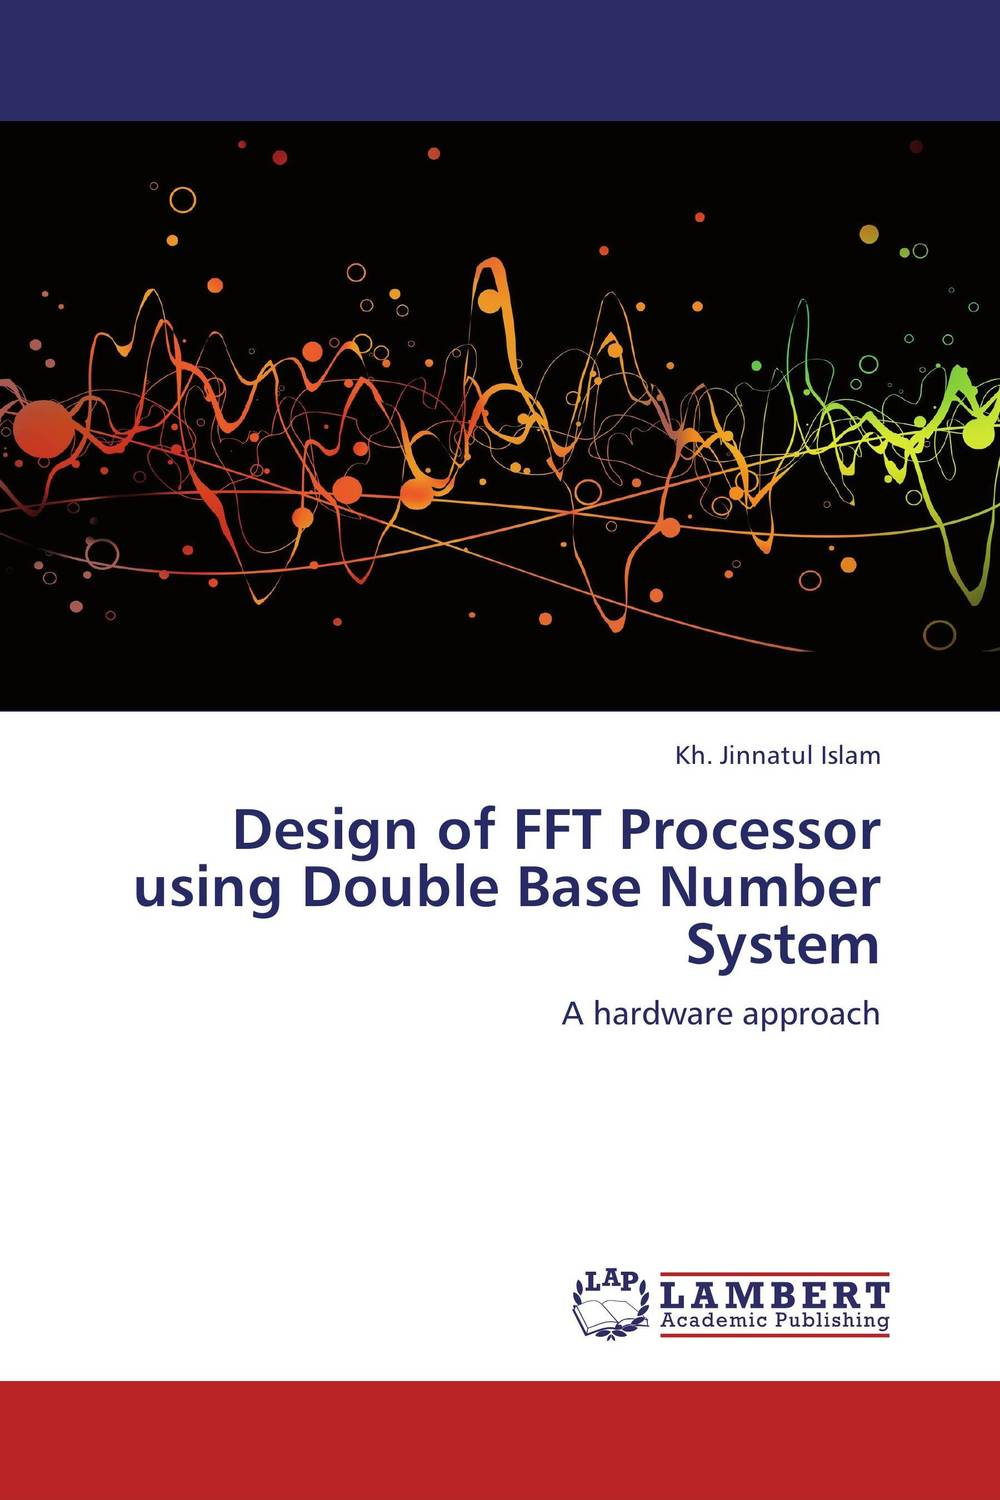 Design of FFT Processor using Double Base Number System